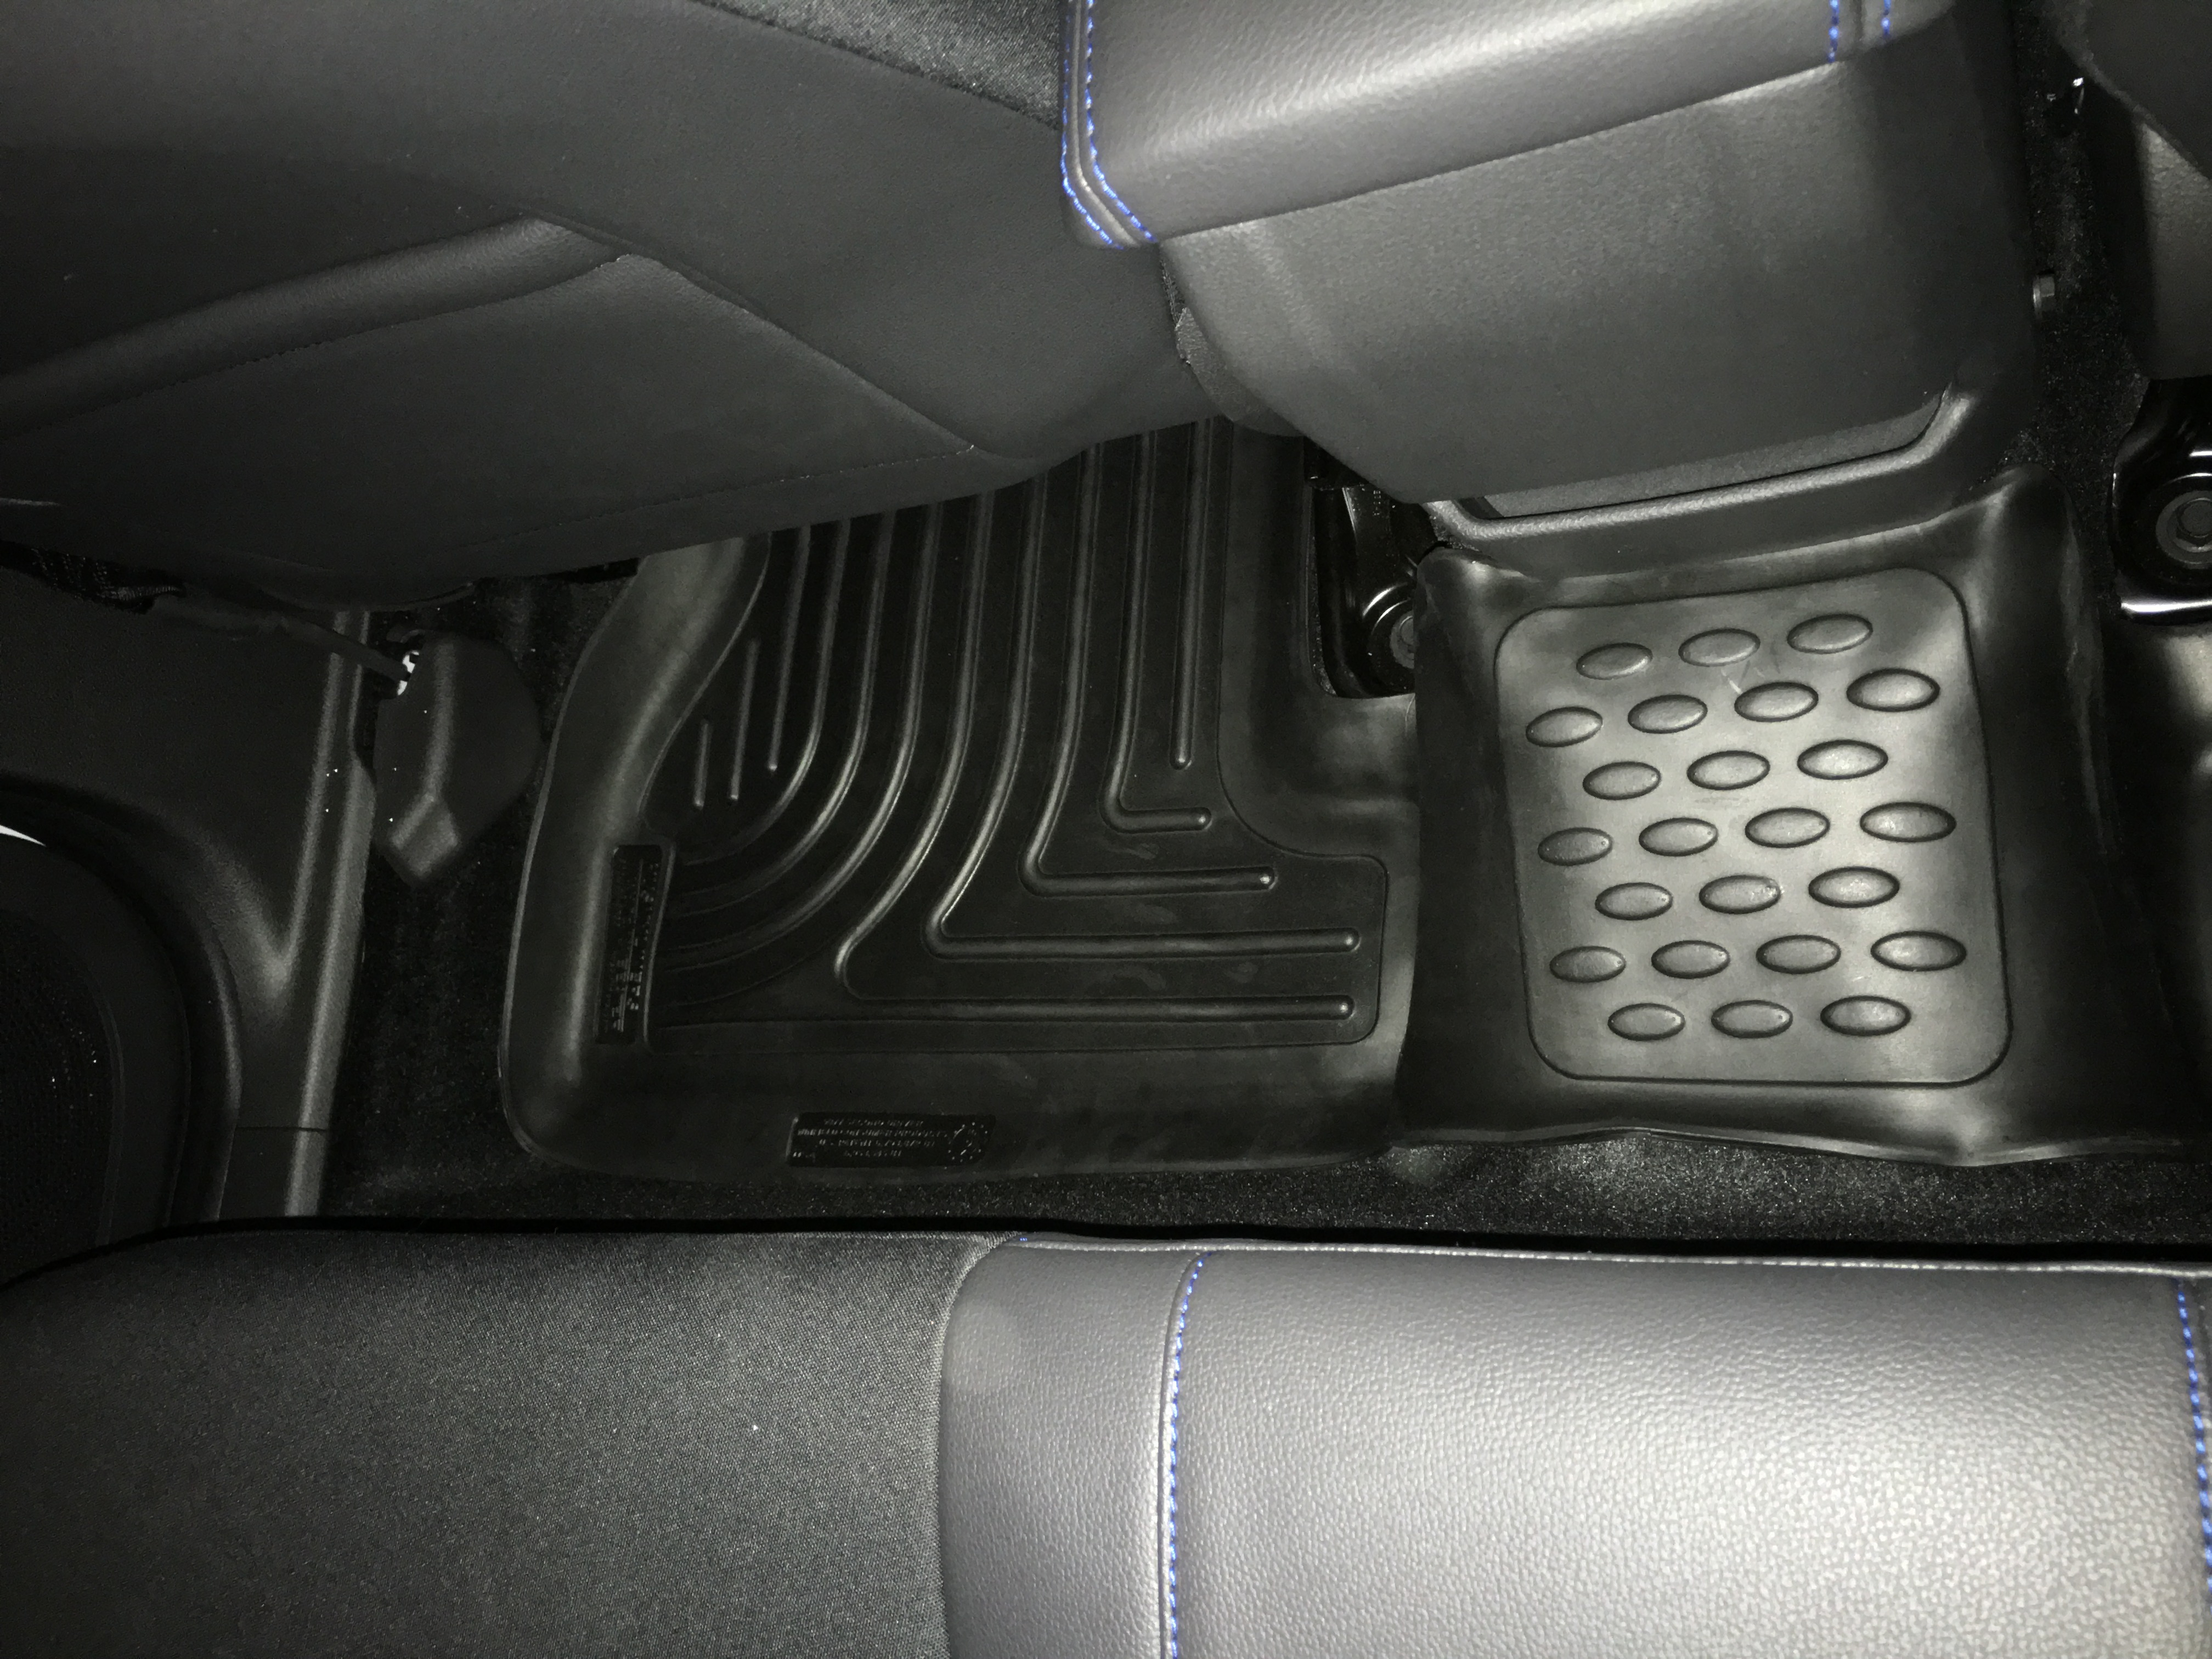 Weathertech floor mats rochester ny - Name Image Jpeg Views 353 Size 2 07 Mb